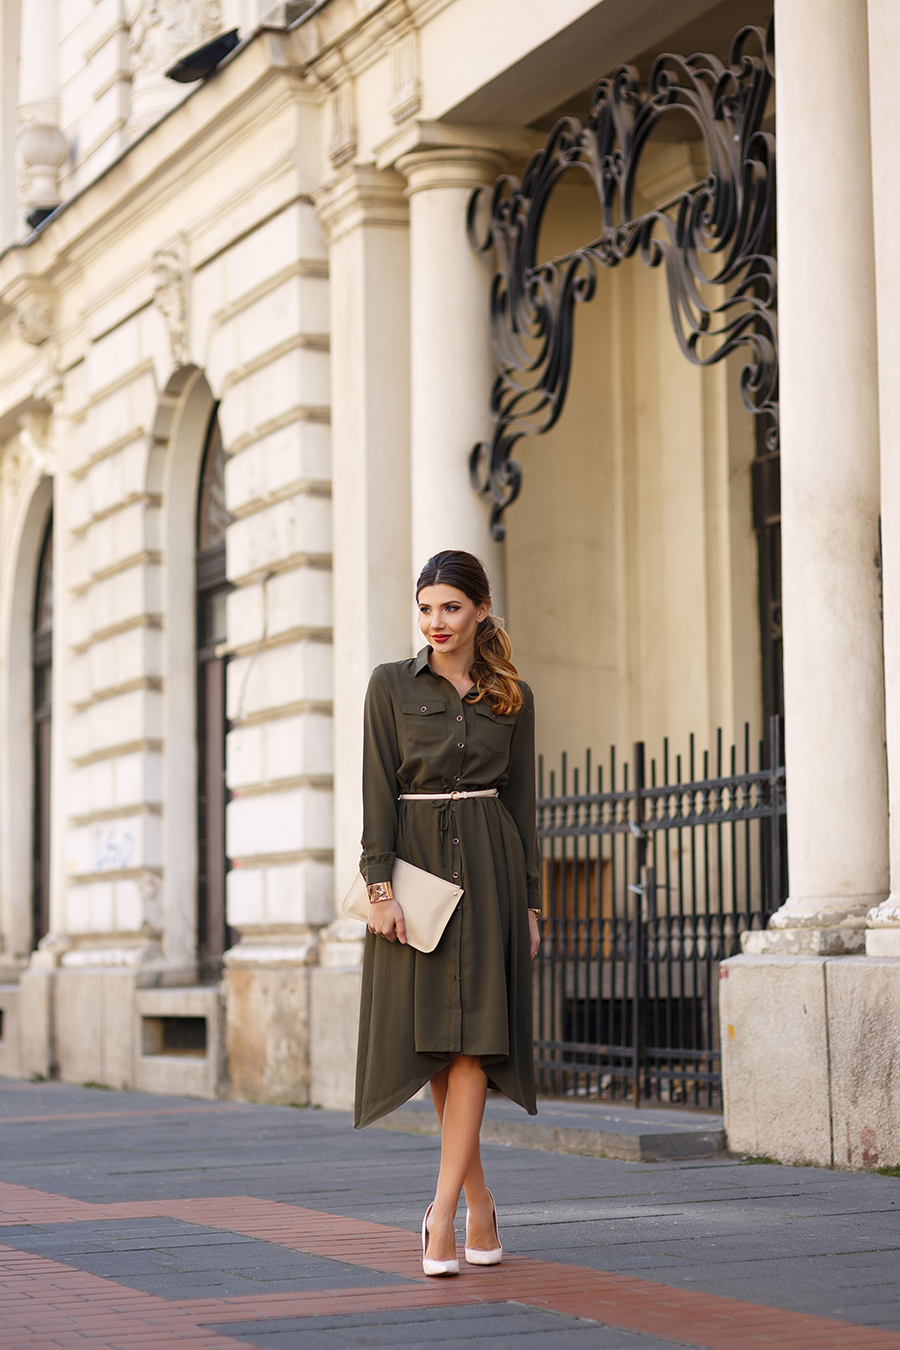 Smarten up a classic khaki shirt dress by adding a skinny belt and matching heels. Not only will this accentuate your waistline, but will also add some individuality to your look. Via Larisa Costea. Dress: Chicwish, Stilettos: Little Mistress, Clutch: Corto Moltedo.